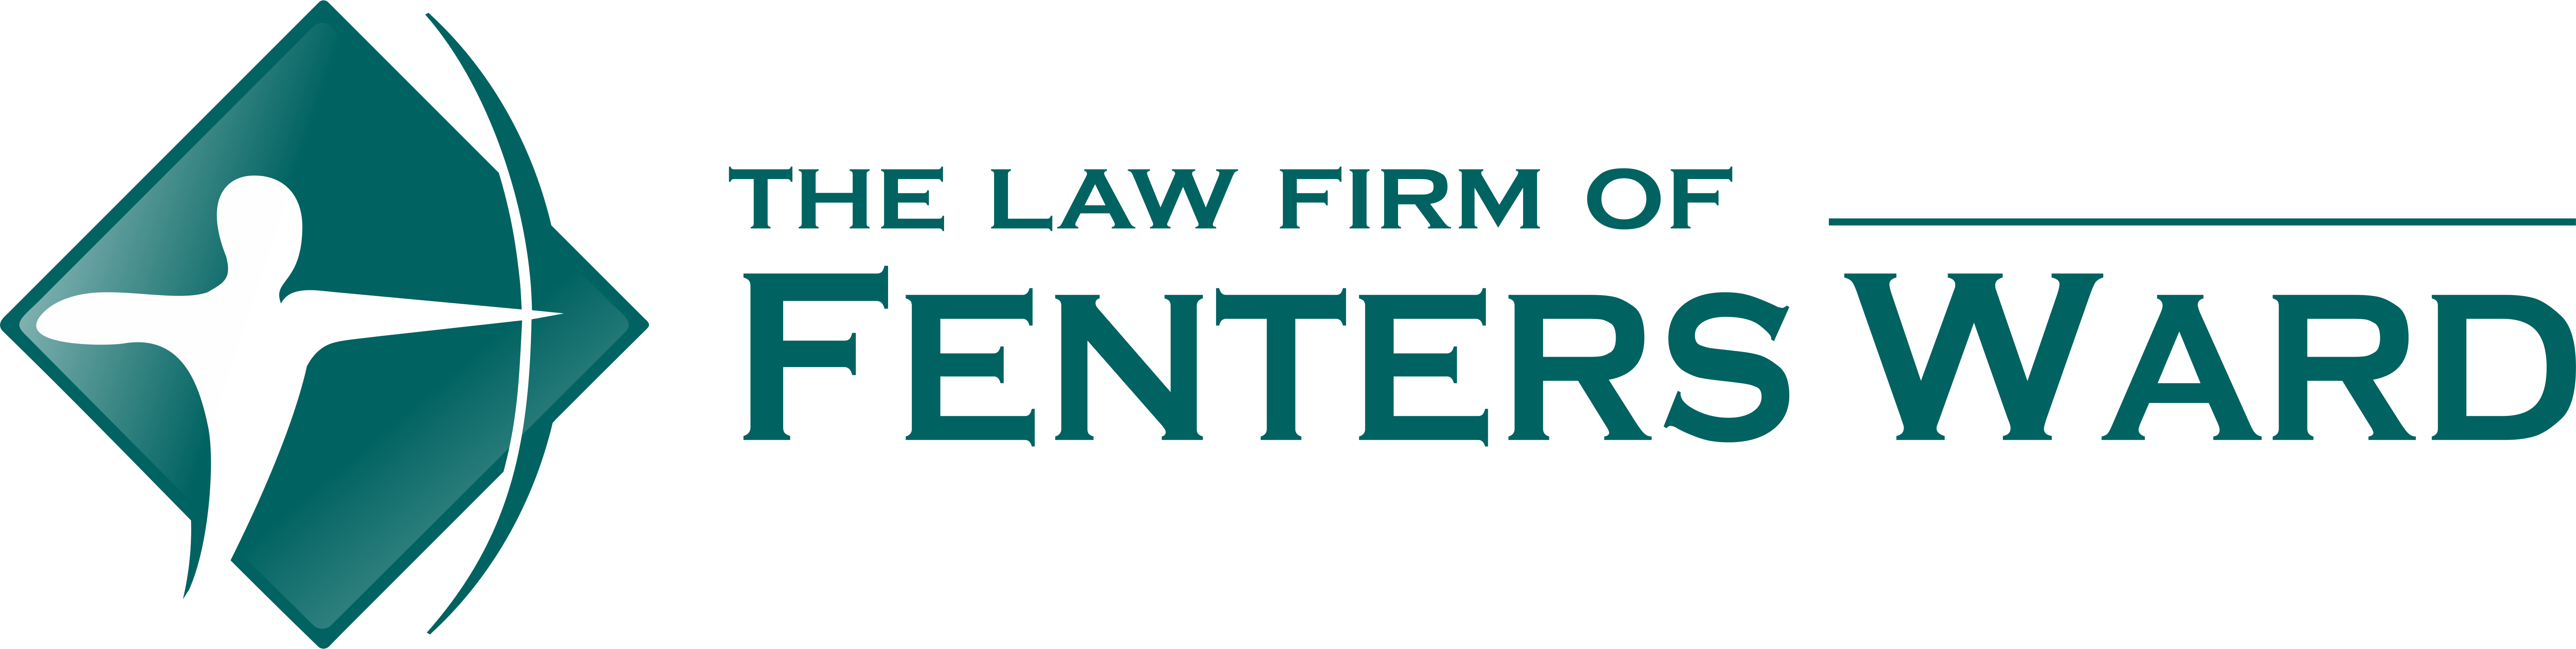 Pennsylvania Law Firm Describes What Makes A Strong Personal Injury Claim